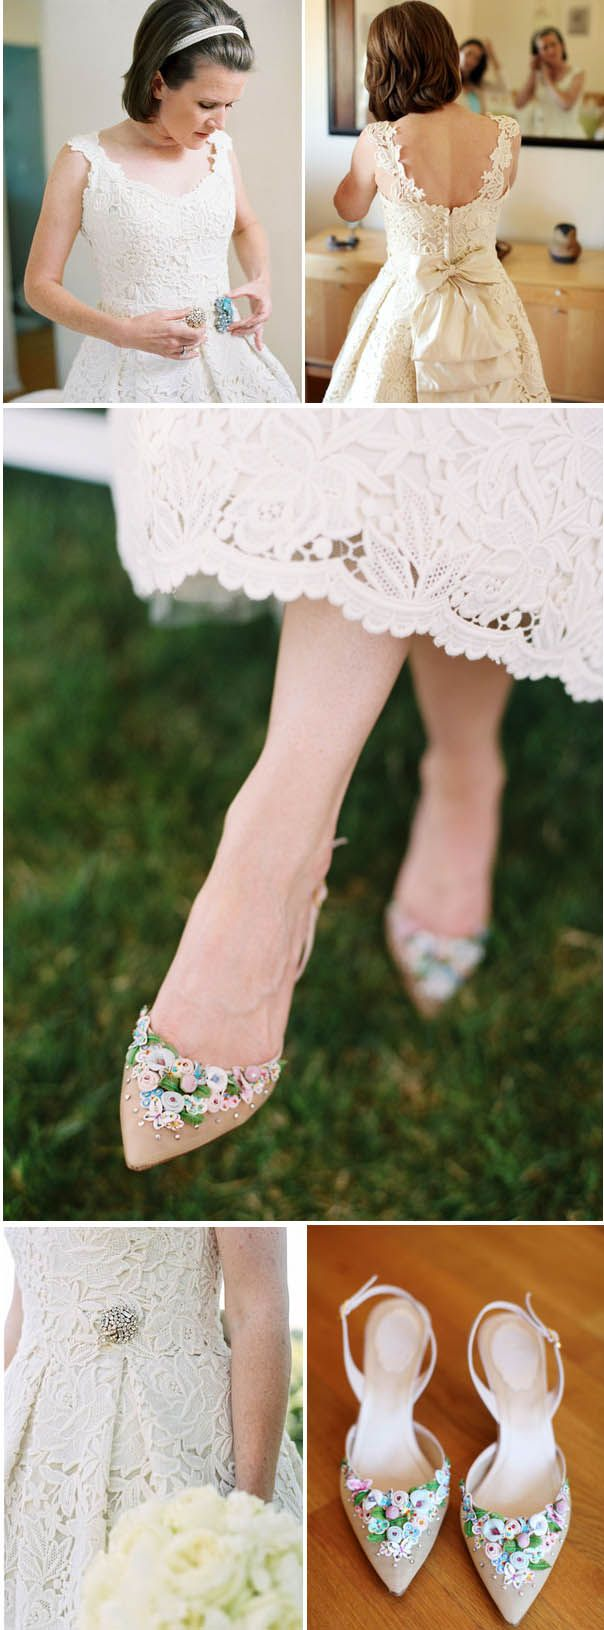 These Shoes Are Adorable Floral Wedding Shoe Wedding Shoes Vintage Vintage Shoes [ 1630 x 604 Pixel ]